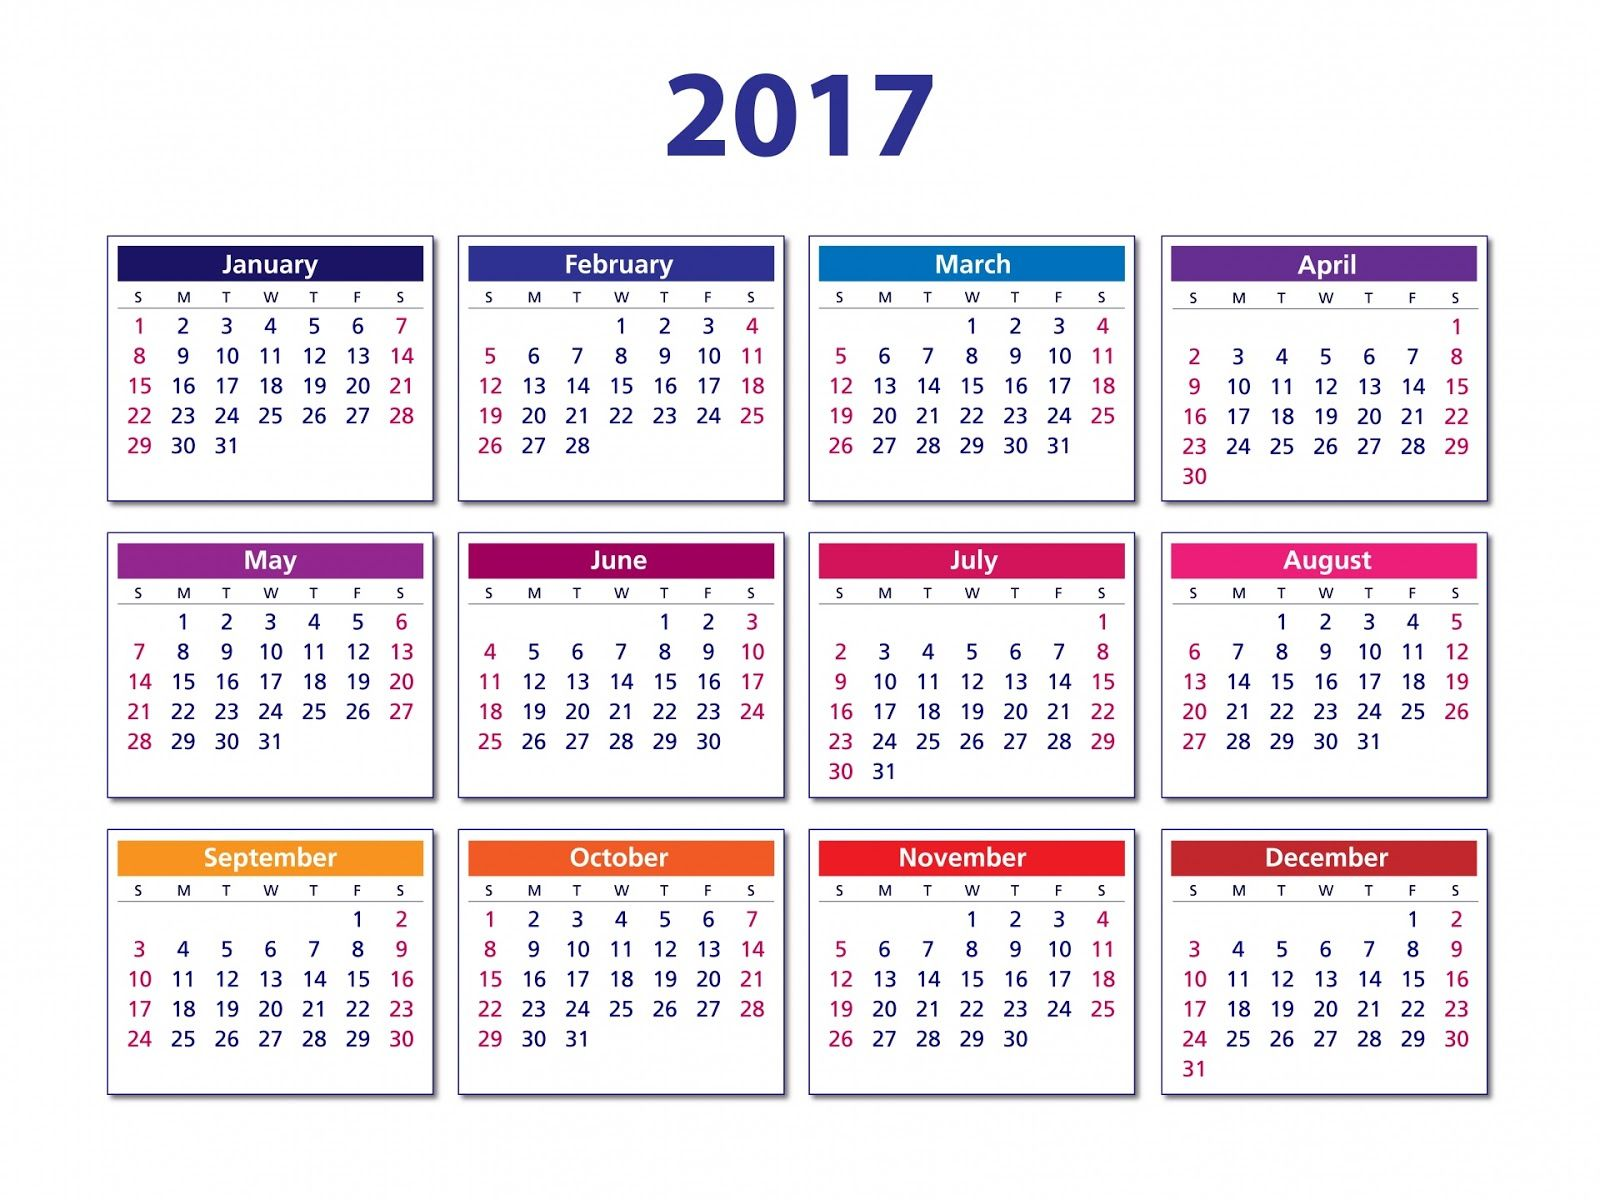 Kalendar 2017 simple and printable | calendar | Pinterest | Simple